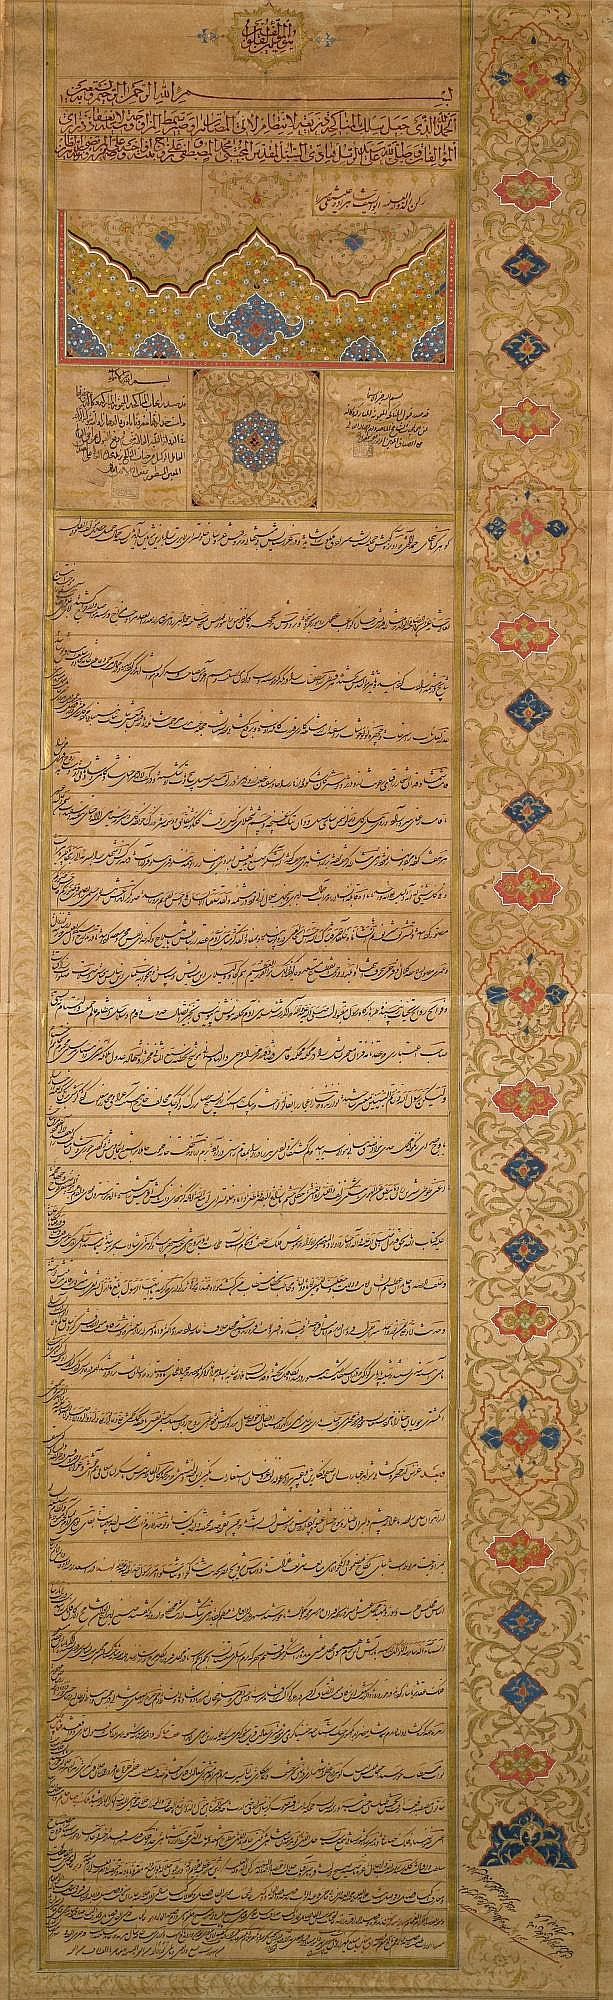 AN ILLUMINATED MARRIAGE CONTRACT OF MALIK JAHAN KHANUM, GRAND-DAUGHTER OF FATH ALI SHAH TO MIRZA MUHAMMAD HASSAN, PERSIA, QAJAR, DATED 1249 AH/1833-4 AD |